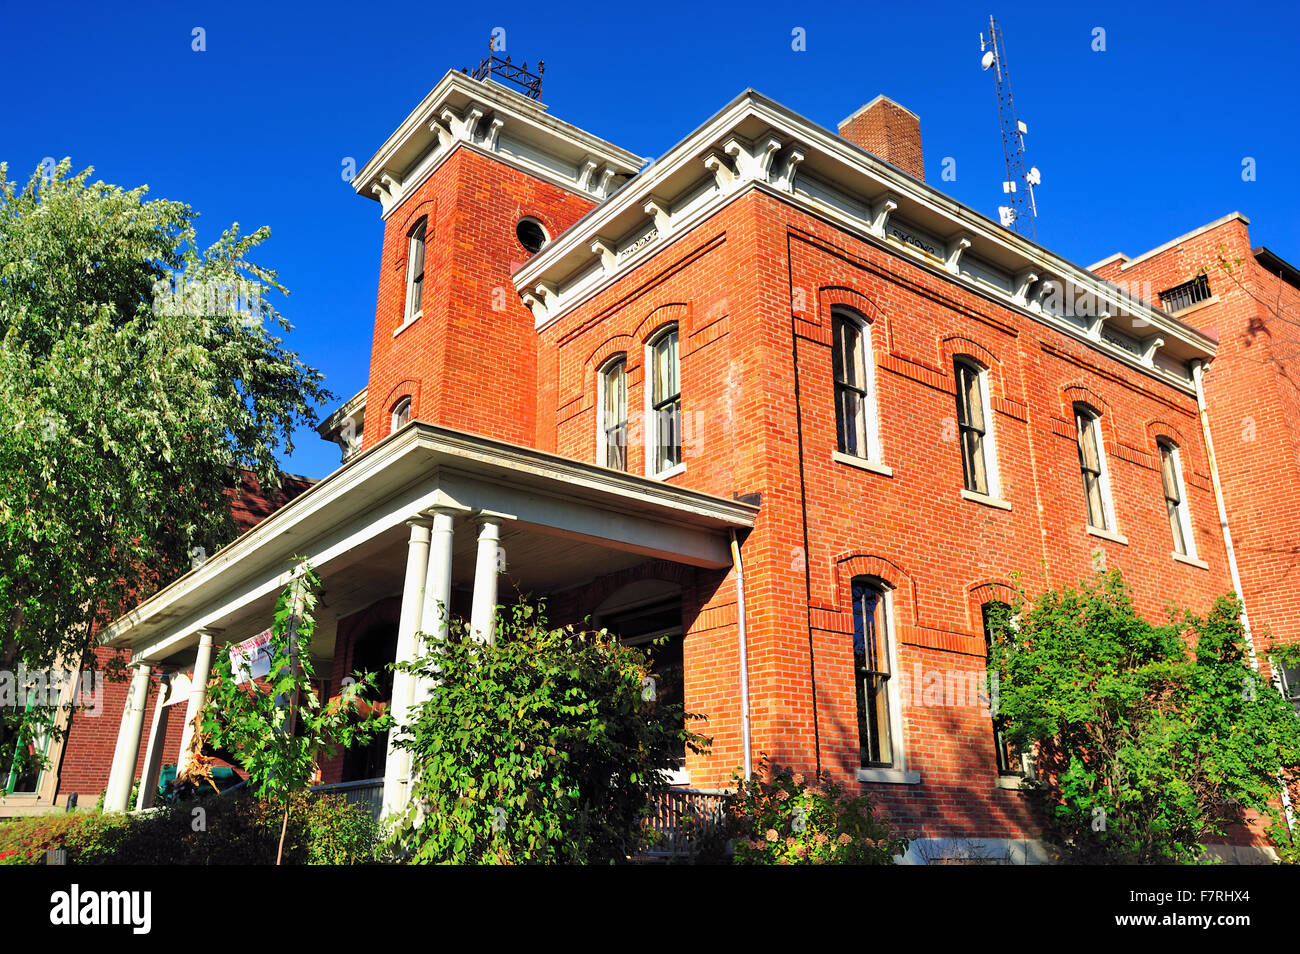 The Lake County Sheriff's house and jail in Crown Point, Indiana were built in 1882 in the Second Empire style.Crown - Stock Image